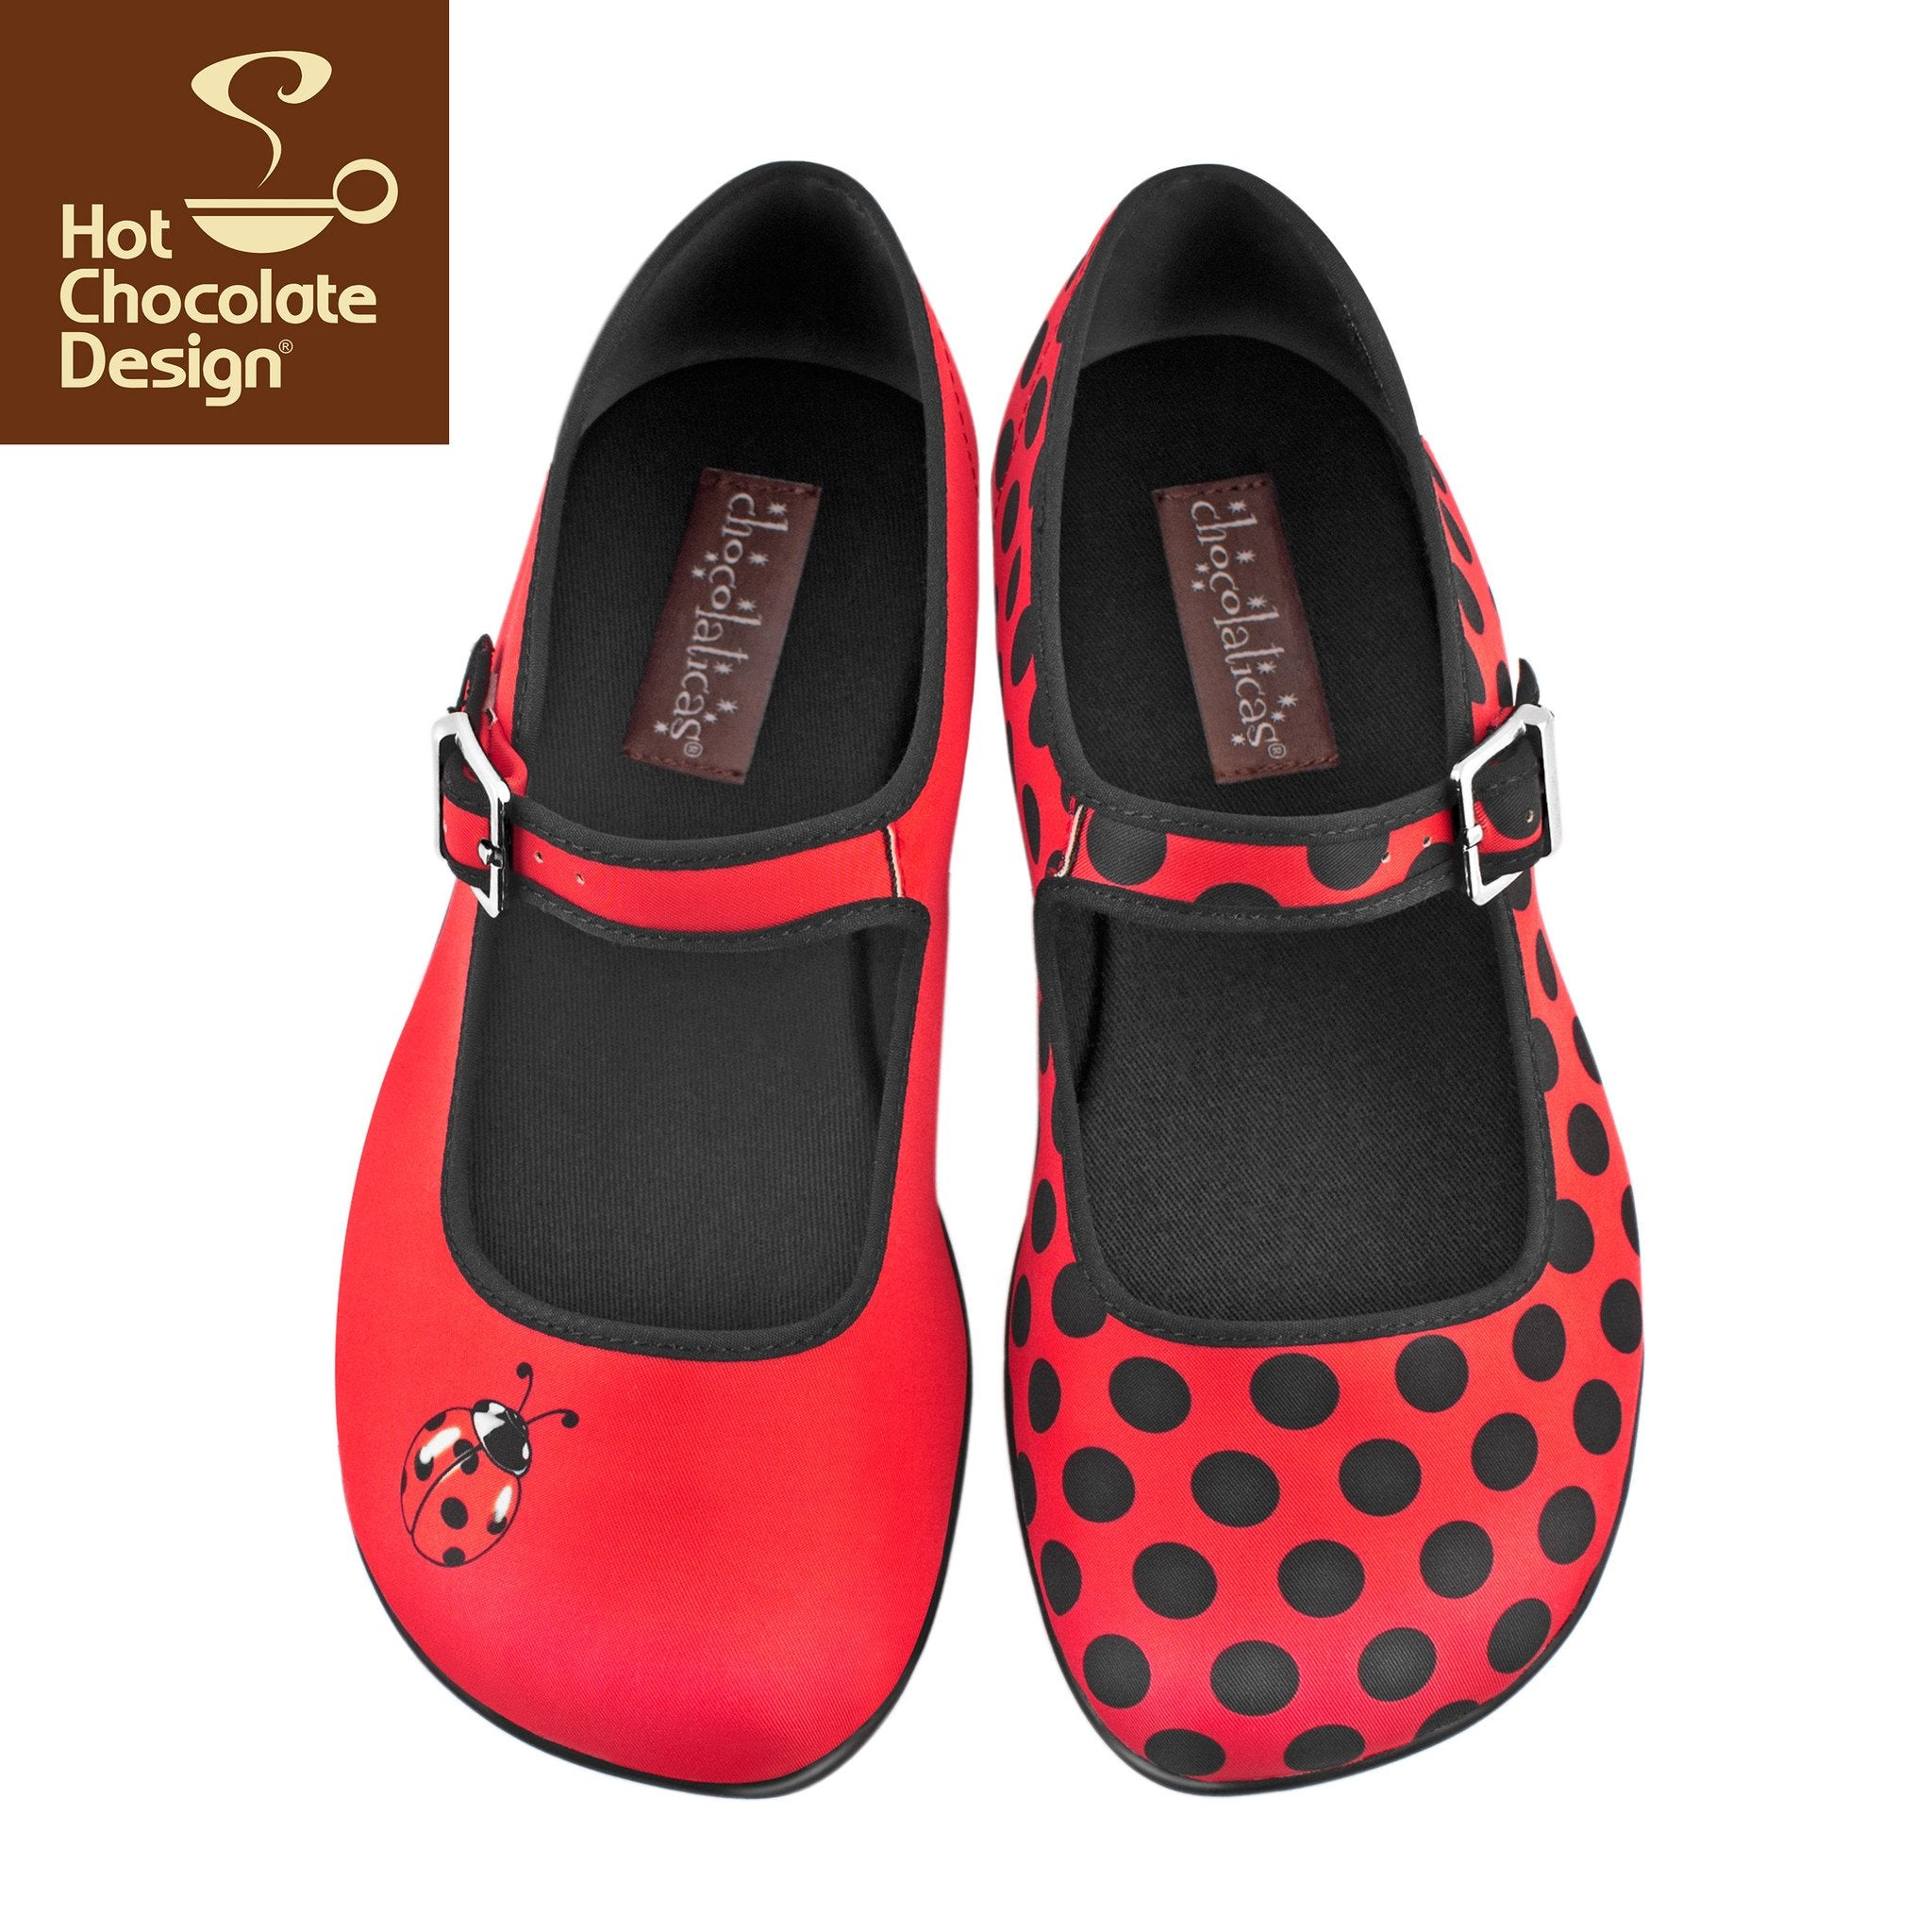 Hot Chocolate Design Shoes - Lady Bug